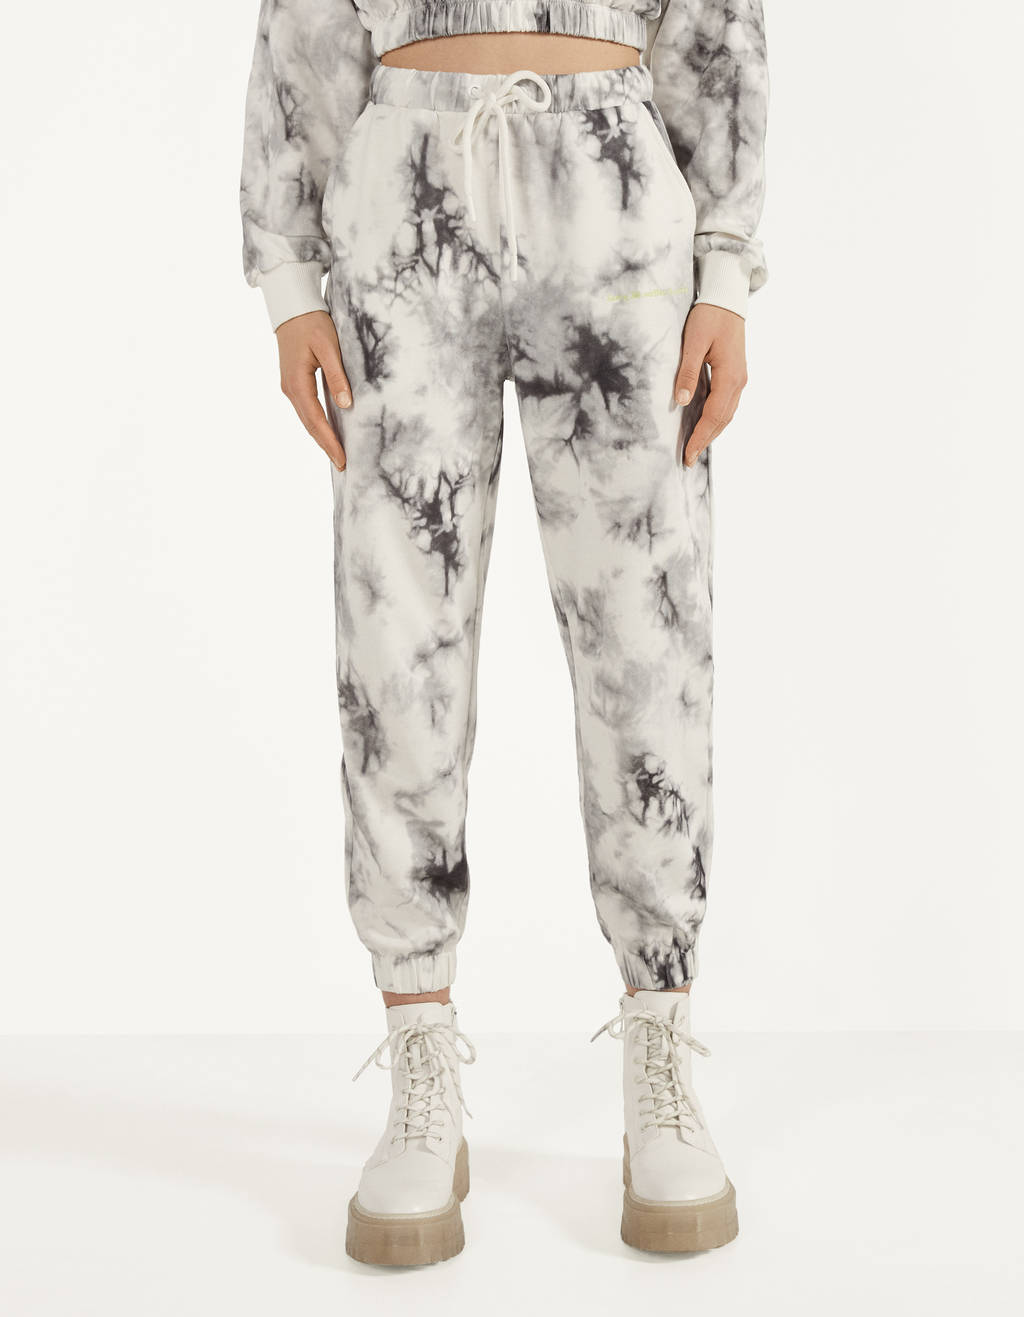 Sweatpants with a tie-dye print